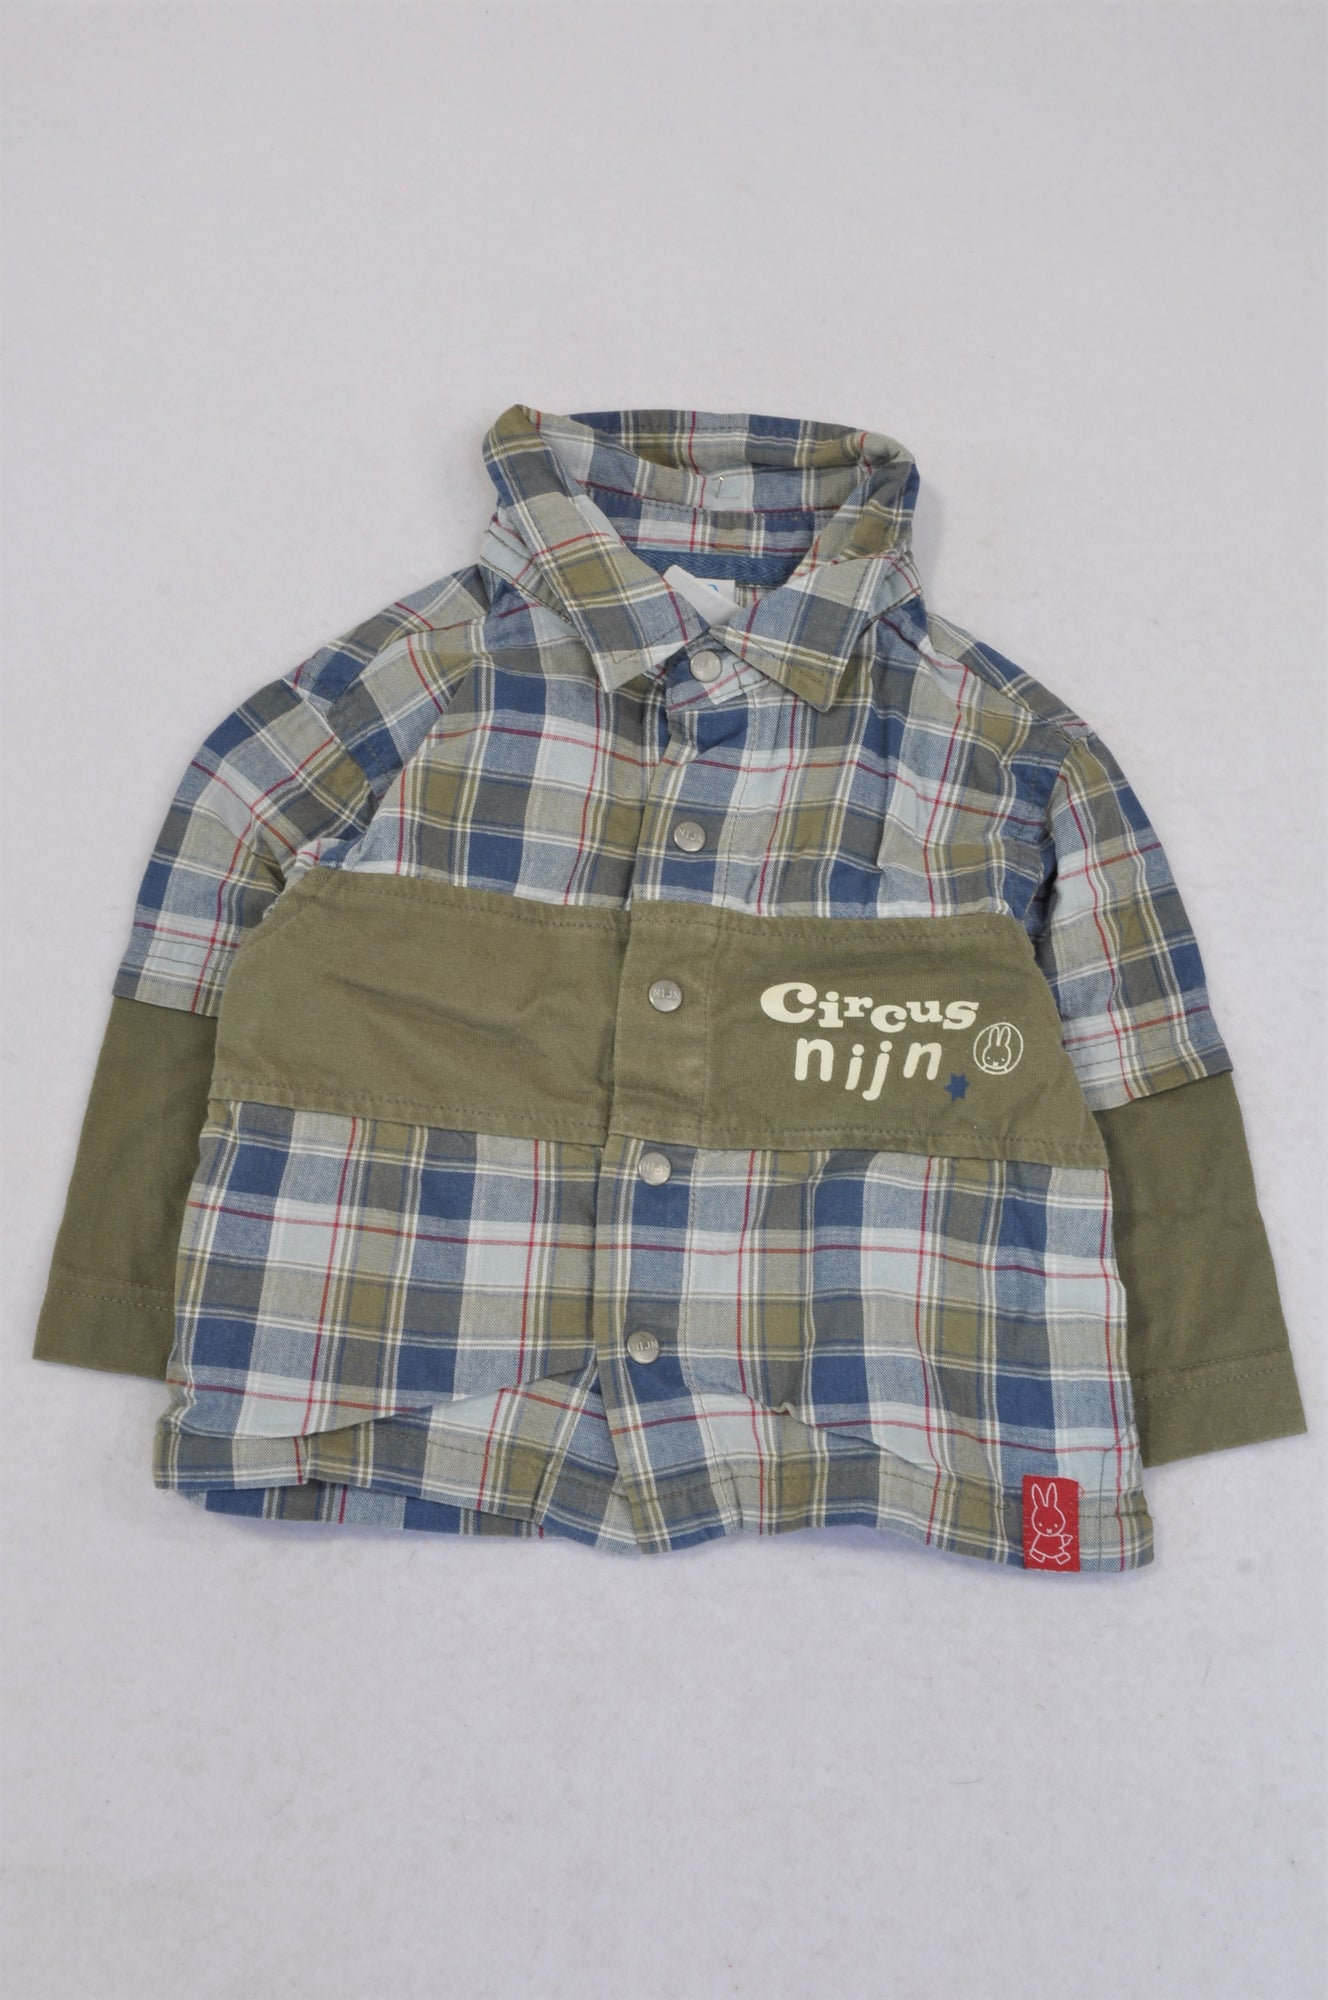 Nijn Olive & Blue Check Circus Shirt Boys 6-12 months